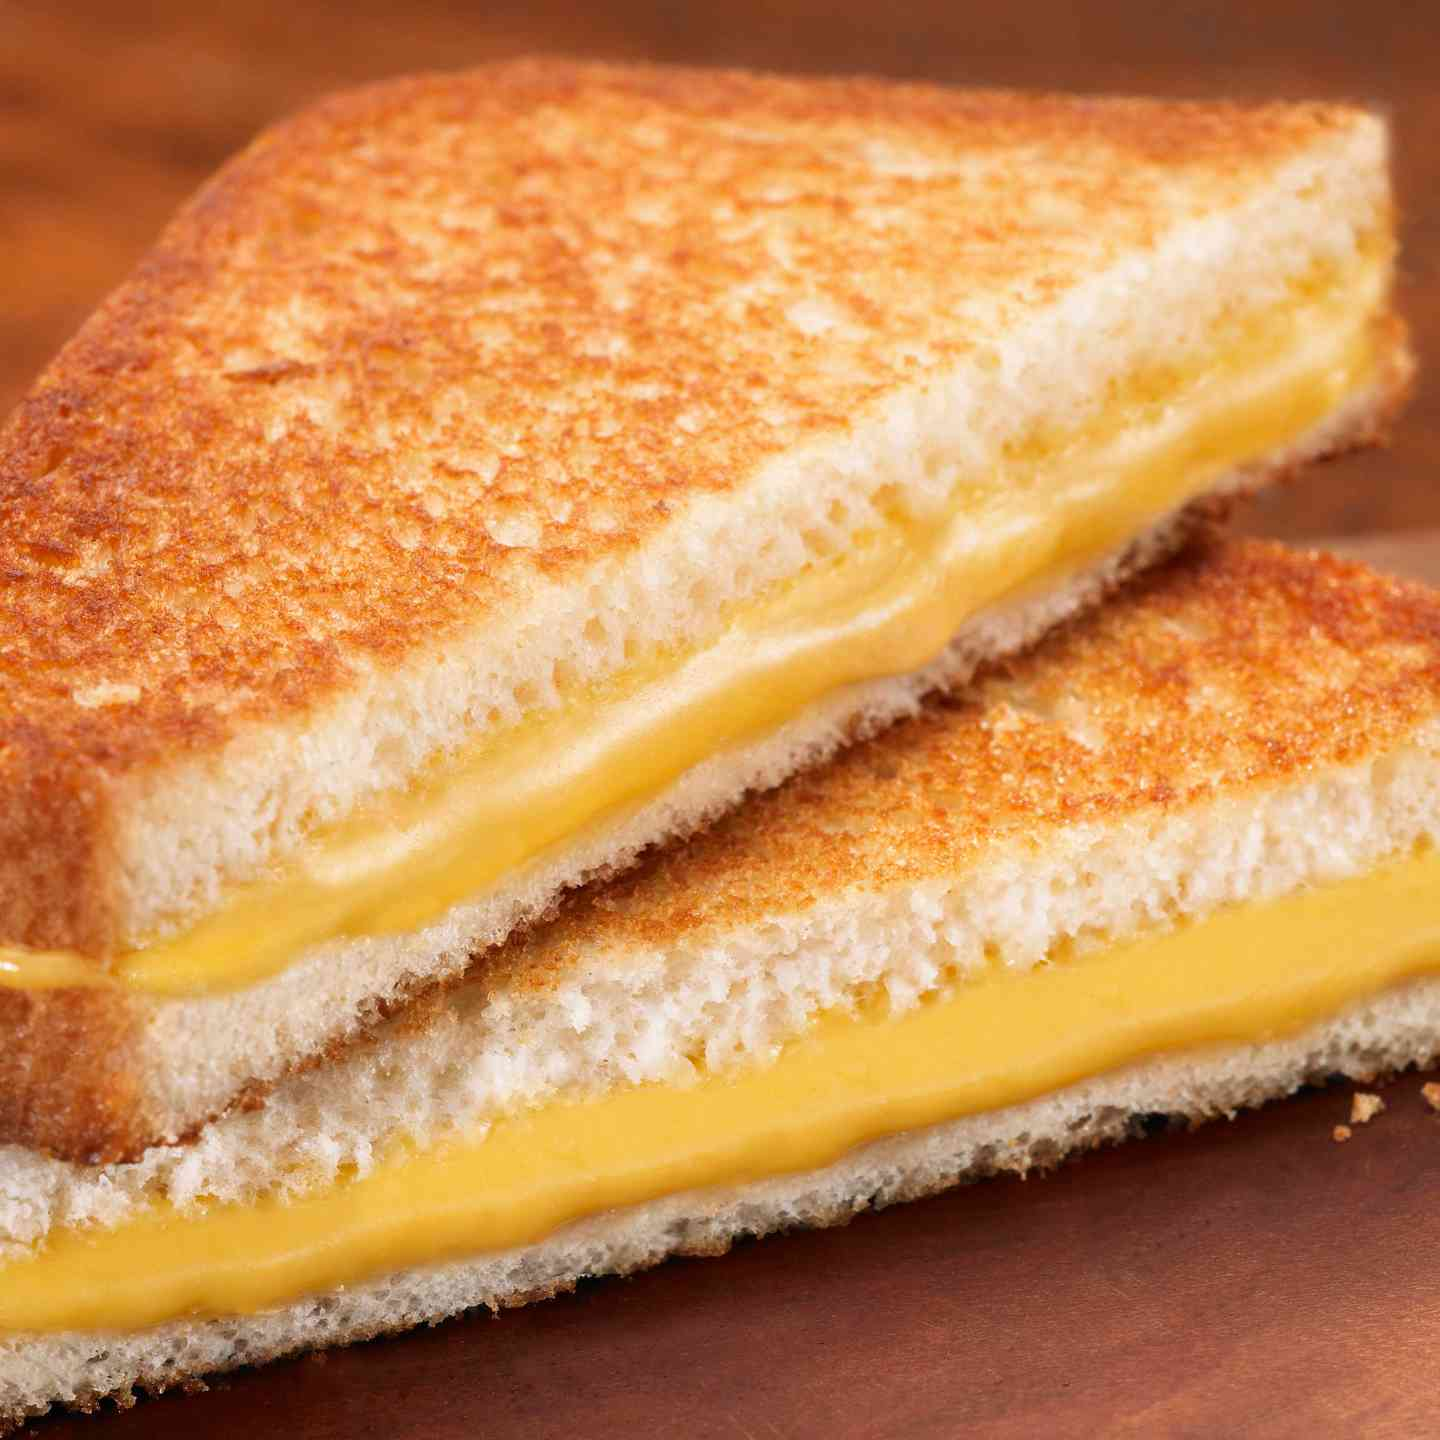 Grilled Cheese Sandwich Toasted